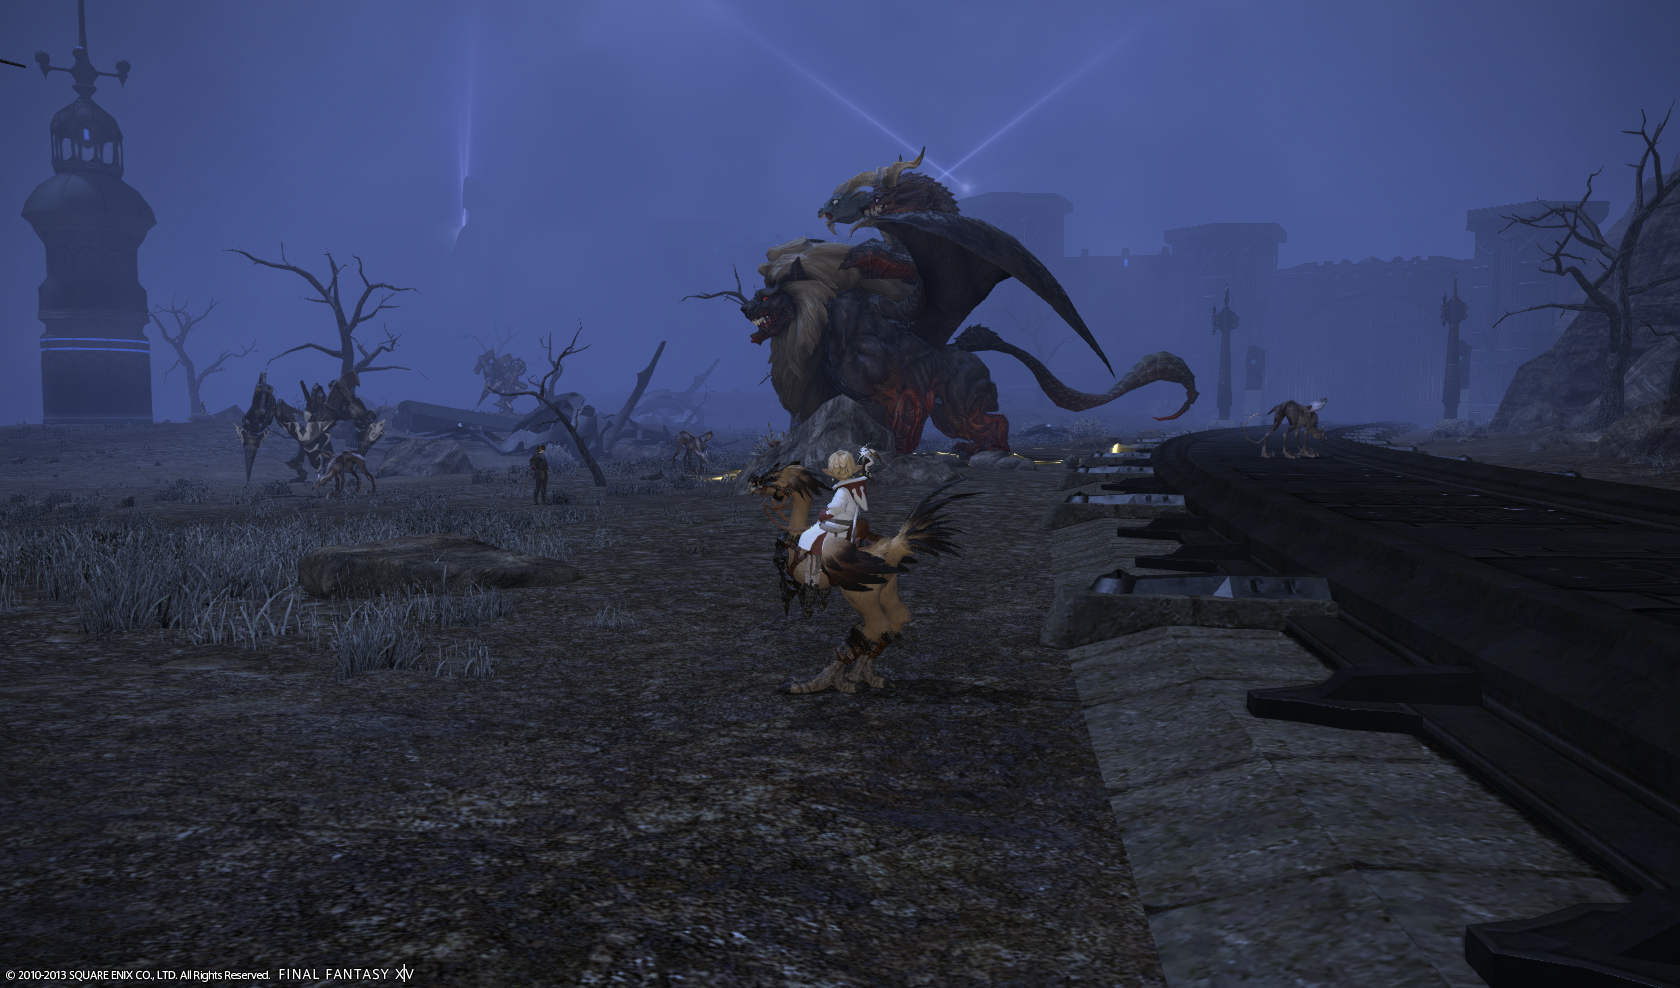 fievel ffxiv beta still edit ignore this favouritebest your screenshots wait post